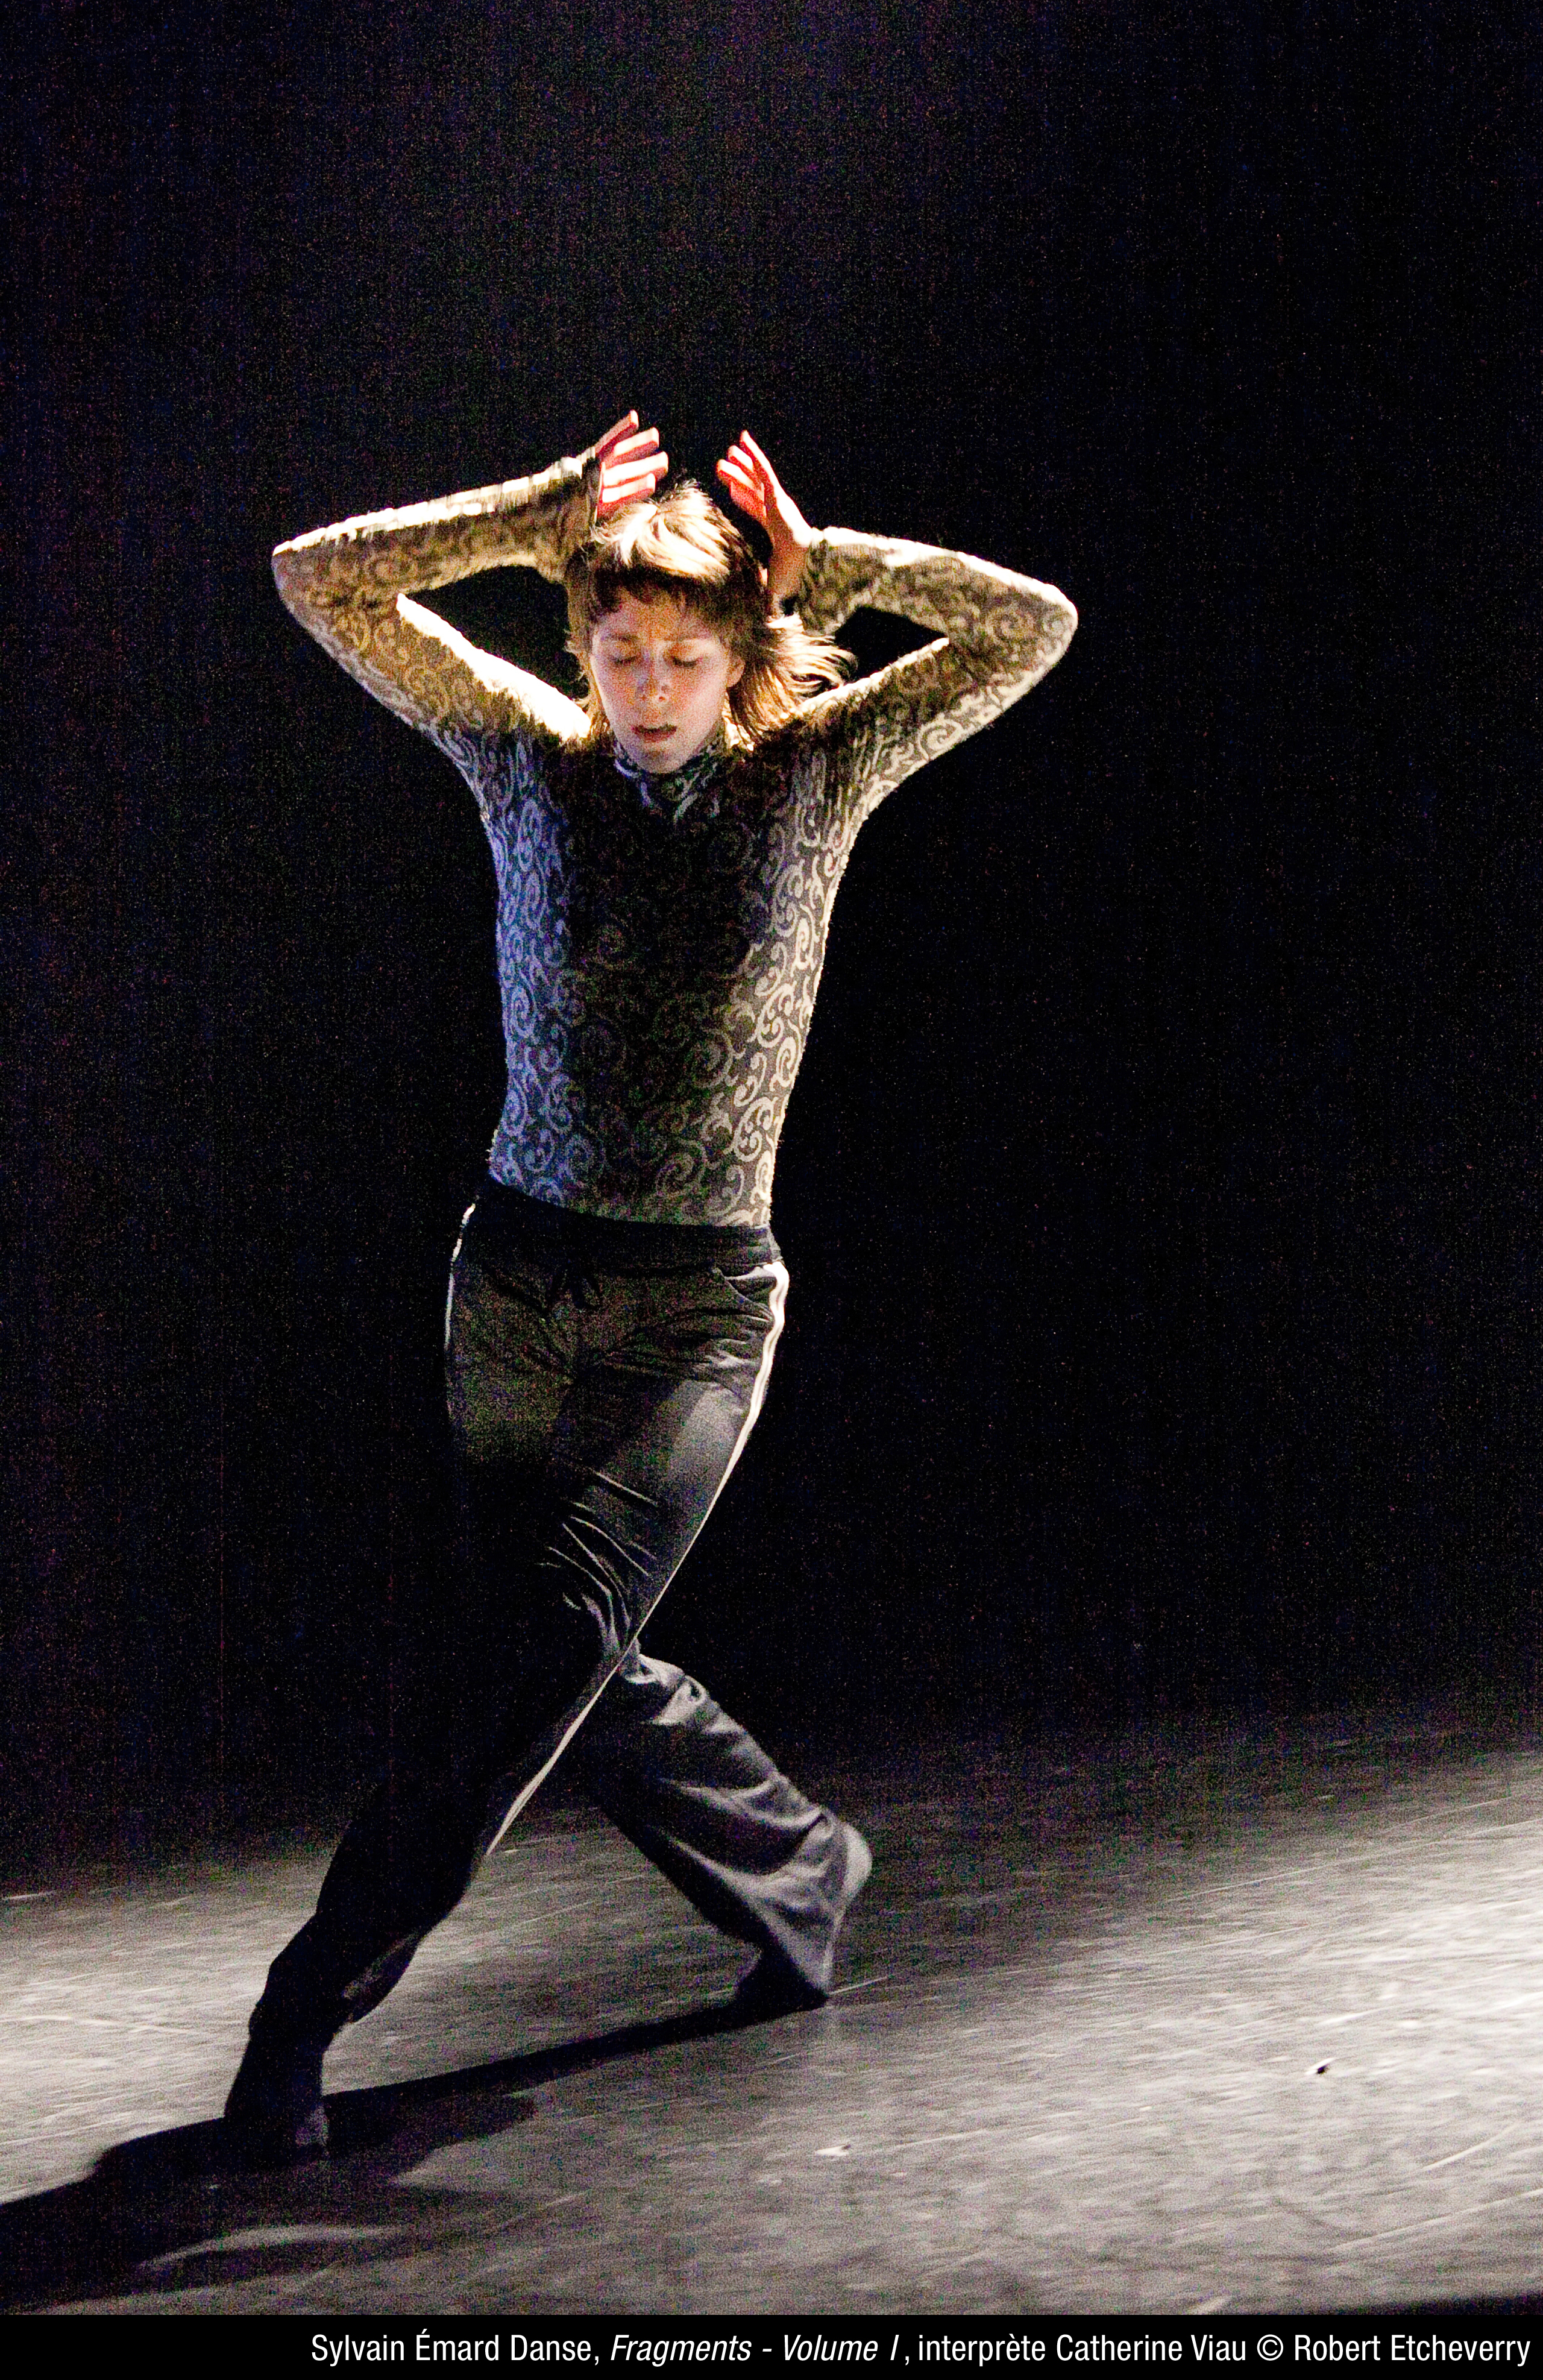 Catherine Viau dans Fragments - Volume 1 par Sylvain Émard. Photo: Robert Etcheverry. Source: Sylvain Émard Danse.